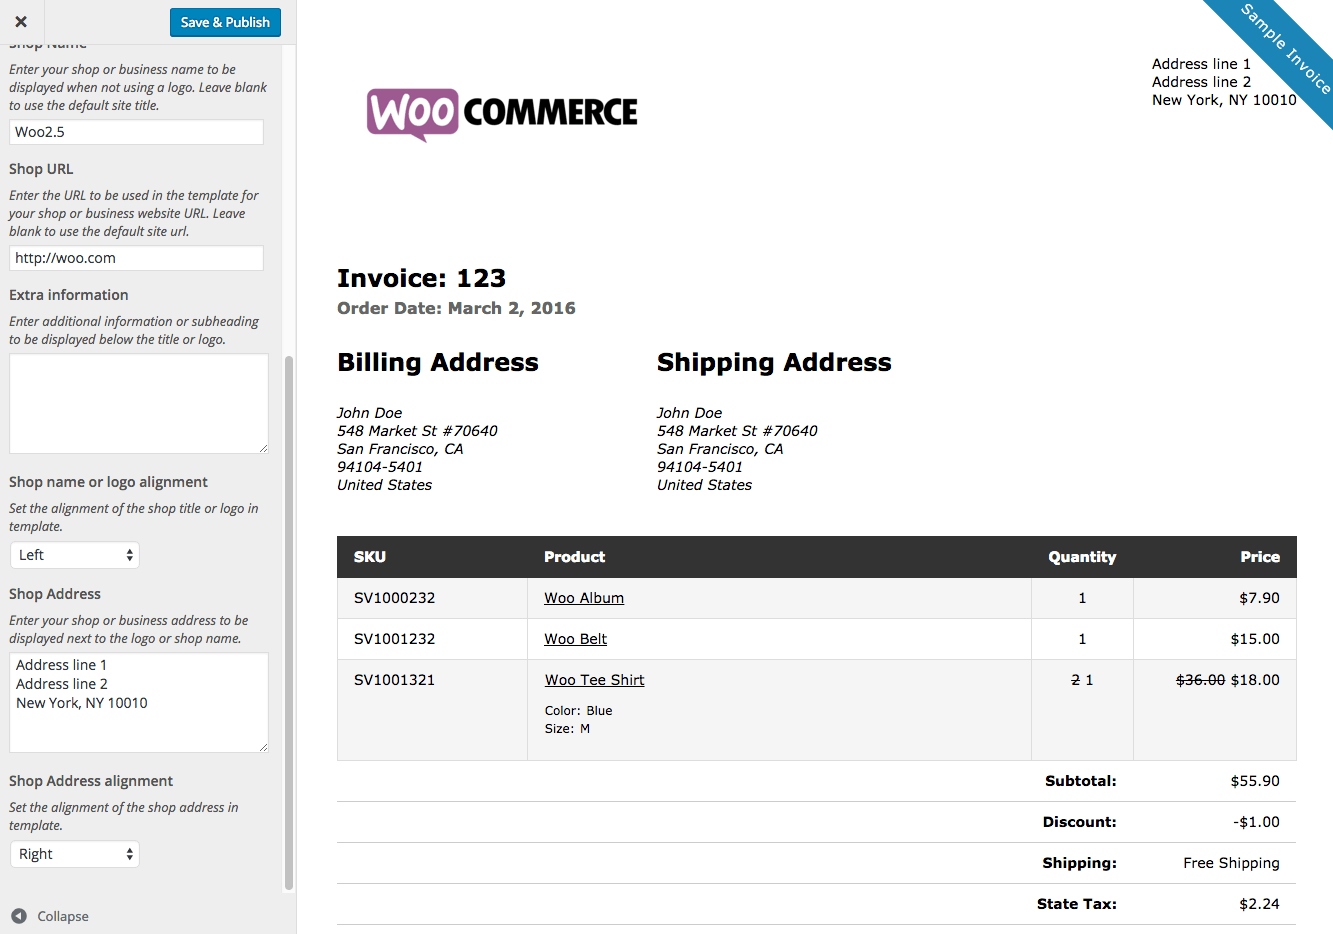 Modaoxus  Winning Print Invoices Amp Packing Lists  Woocommerce With Likable Woocommerce Print Invoices  Packing Lists Customizer With Cool Invoice Letter For Payment Also Invoicing Free In Addition Official Invoice Template And Jeep Invoice As Well As Free Invoices Online Printable Additionally Paypal Fee Invoice From Woocommercecom With Modaoxus  Likable Print Invoices Amp Packing Lists  Woocommerce With Cool Woocommerce Print Invoices  Packing Lists Customizer And Winning Invoice Letter For Payment Also Invoicing Free In Addition Official Invoice Template From Woocommercecom